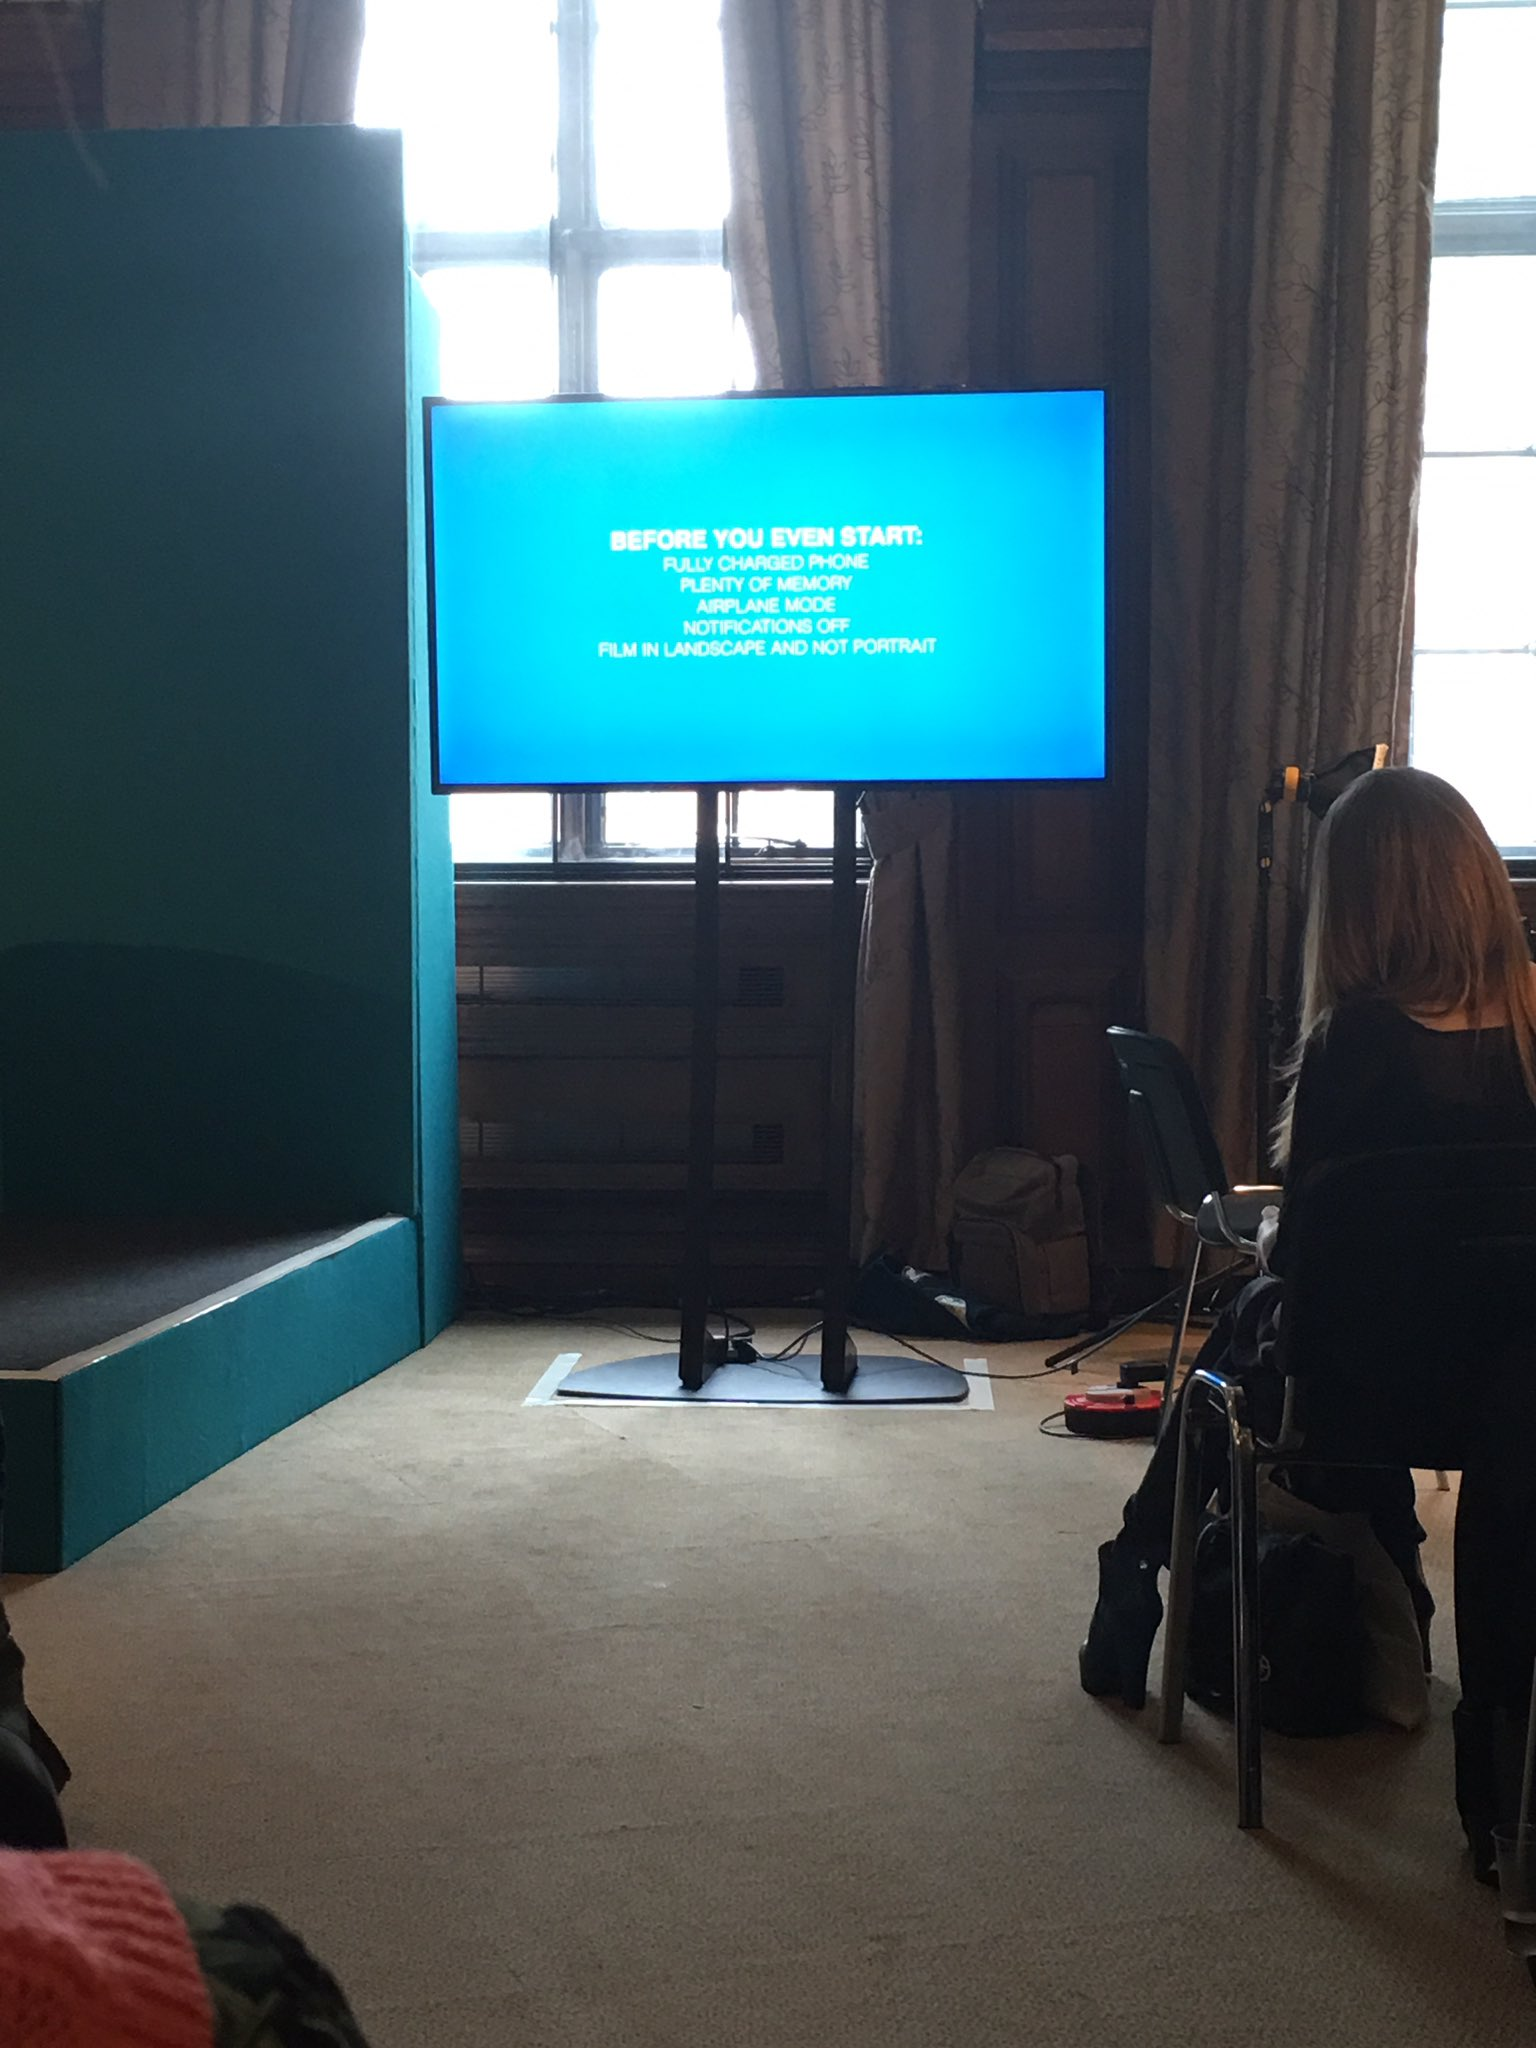 Filming essentials & a tip - filiming in landscape makes the most of your real estate. Avoid a broadcast look/feel #cipdLDShow #E3 https://t.co/kyzeY6IPys